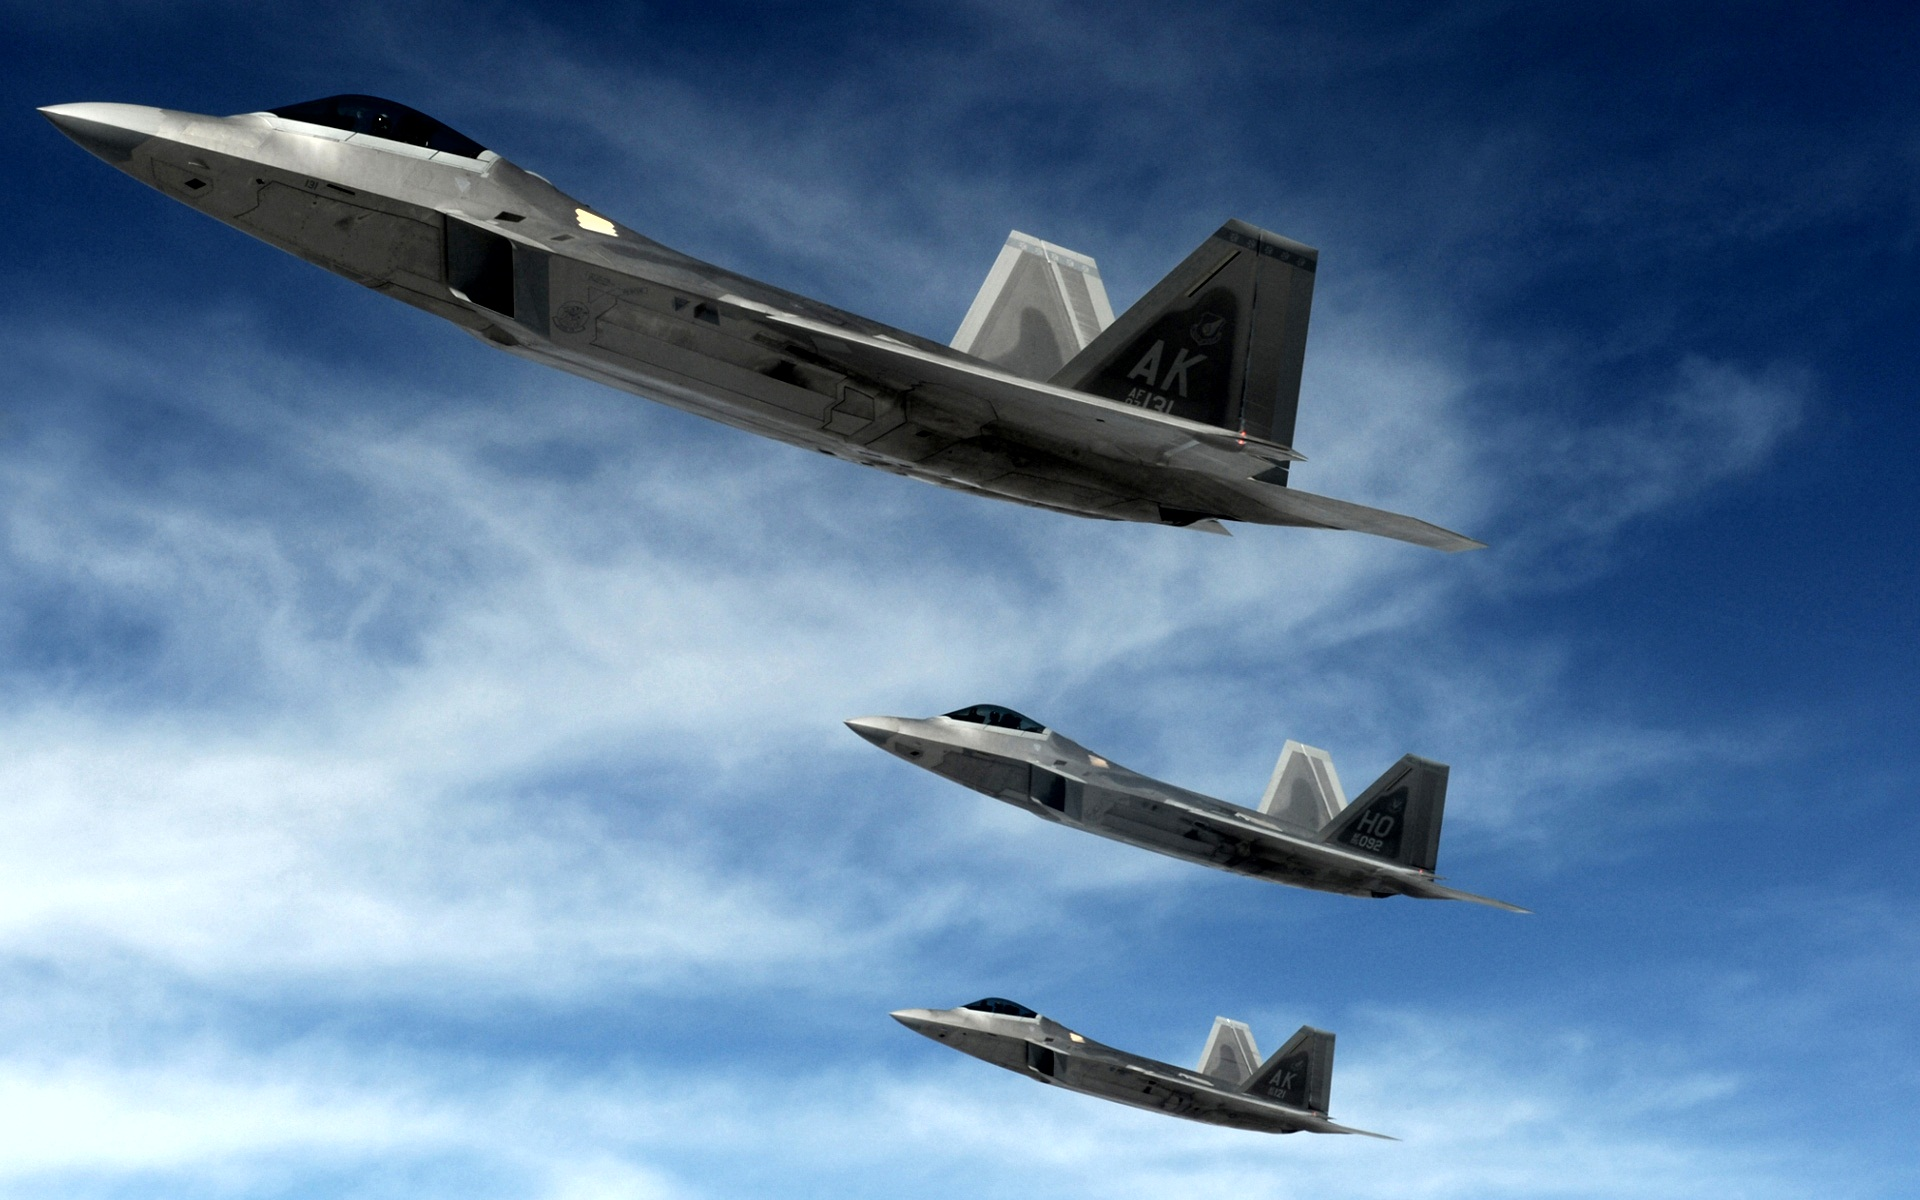 22 Raptors Stealth Fighters Wallpapers HD Wallpapers 1920x1200